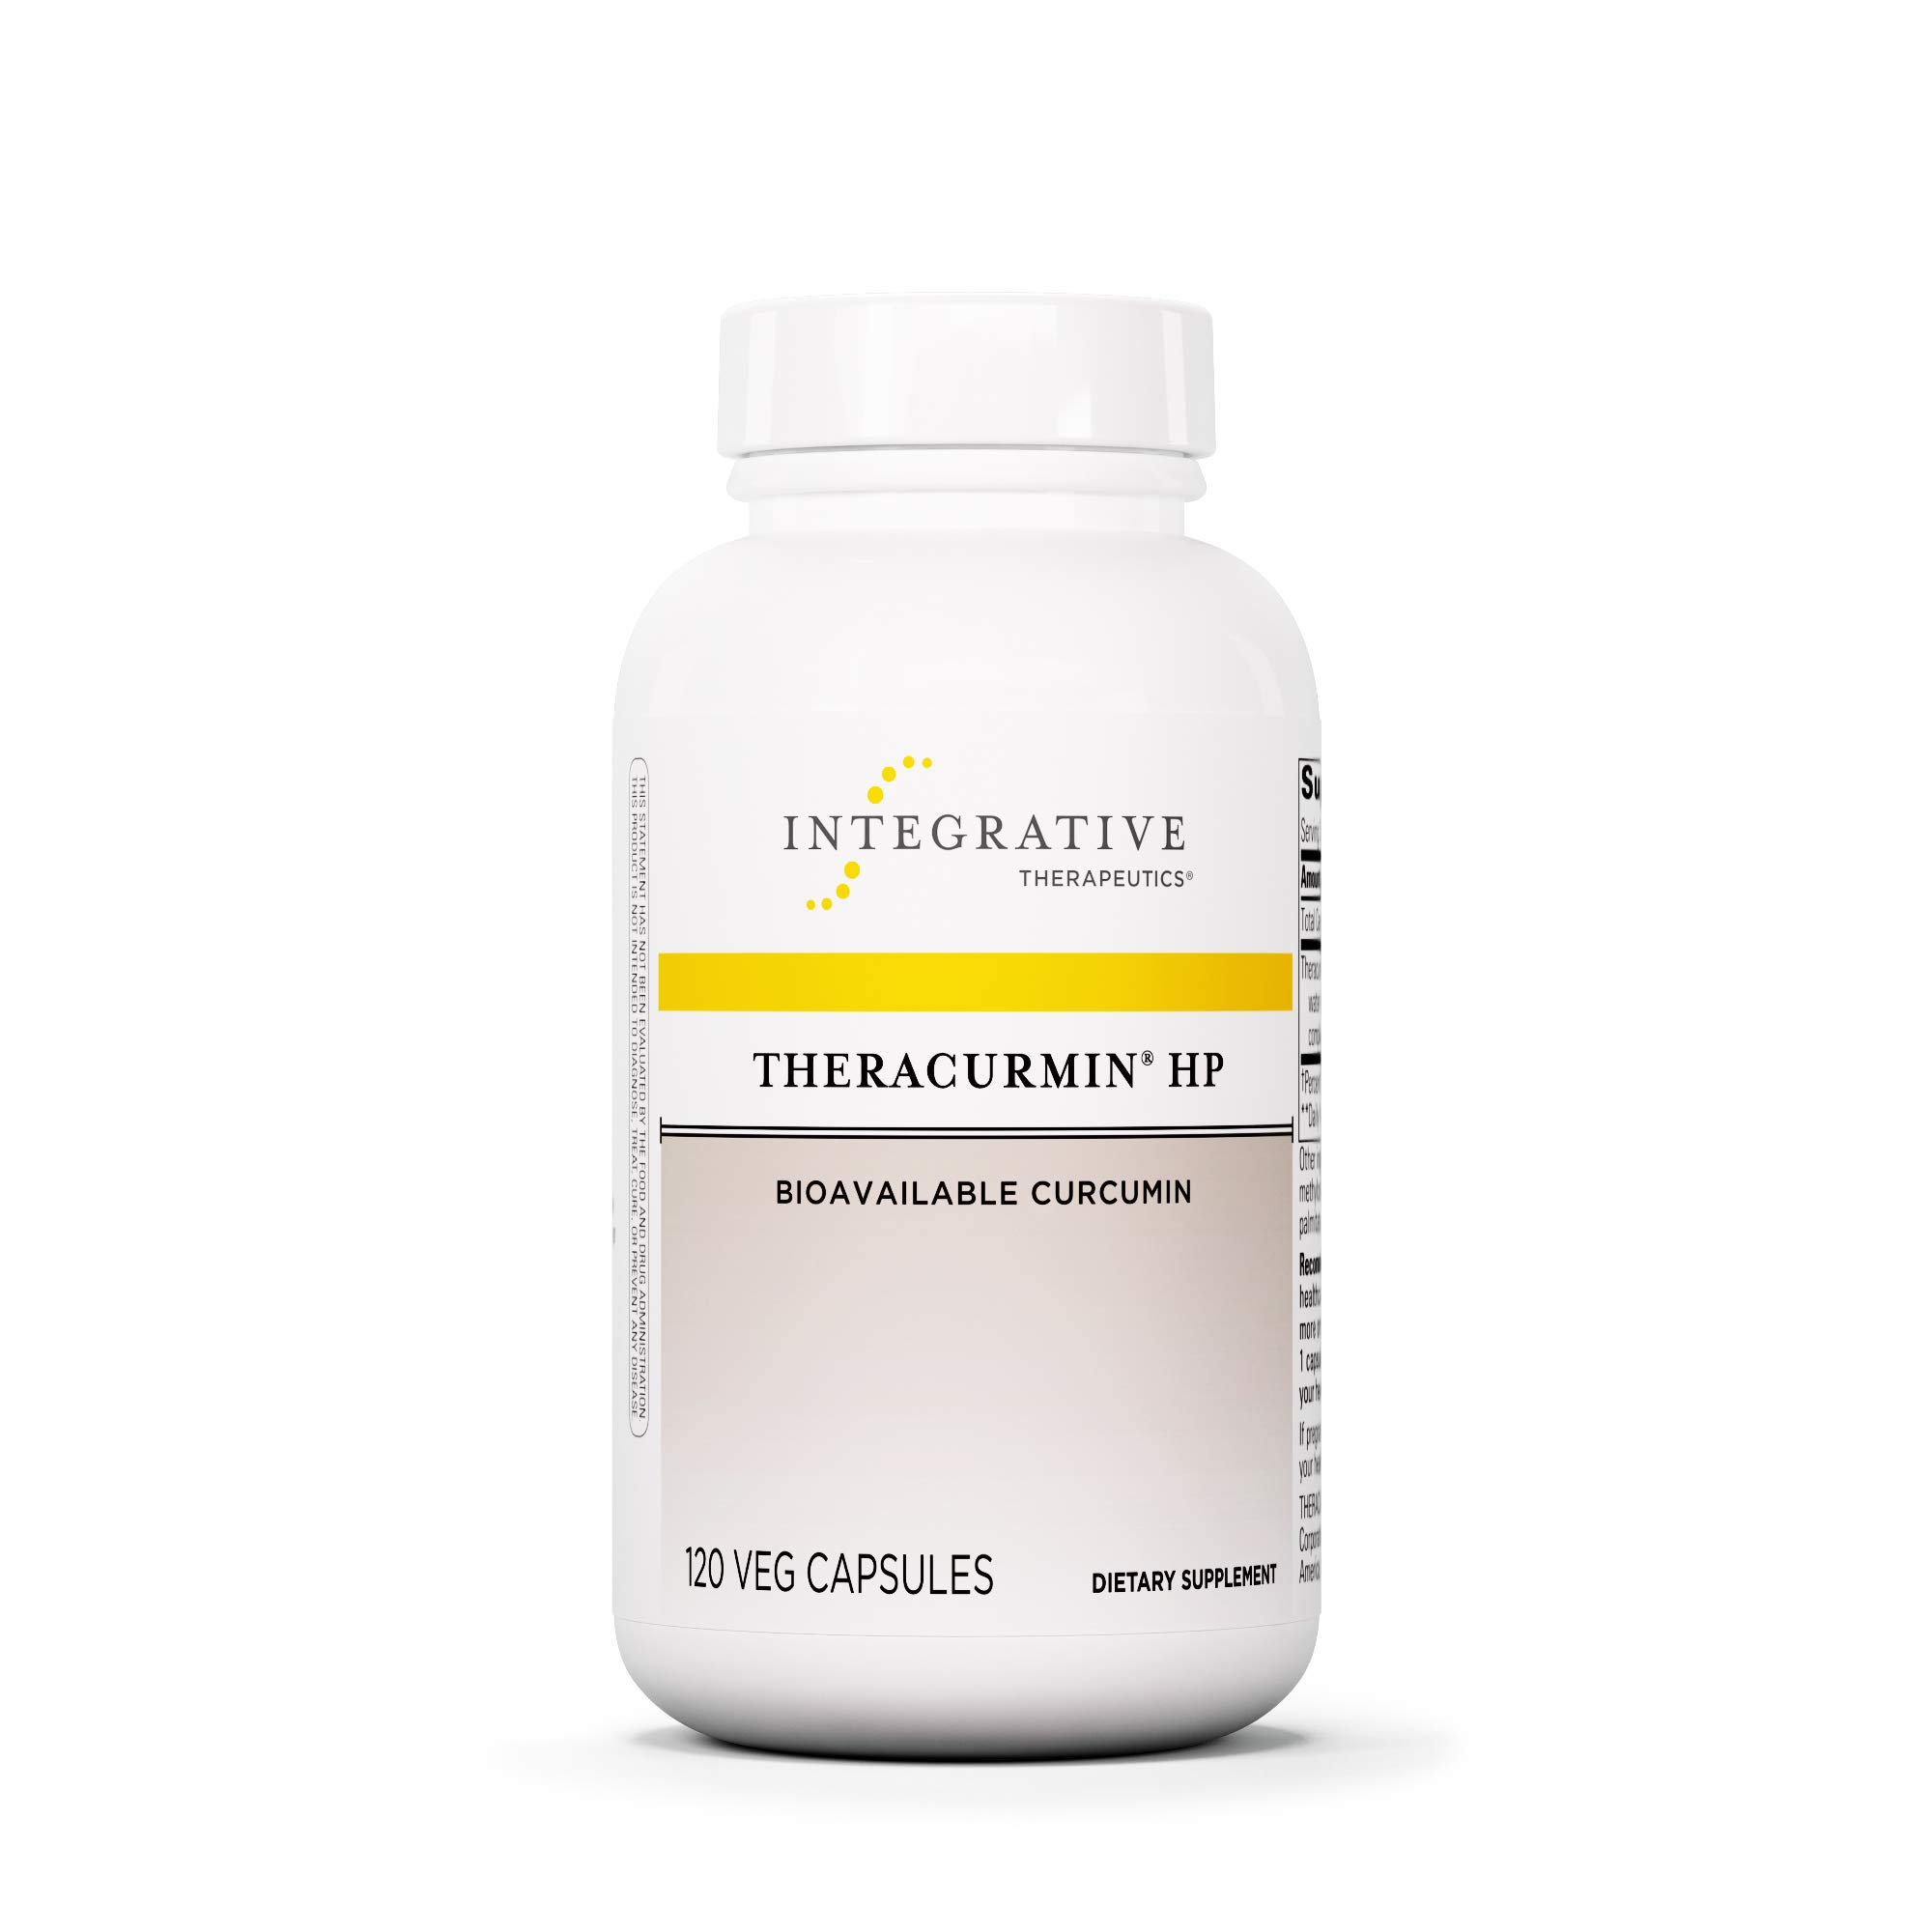 Integrative Therapeutics - Theracurmin HP - Turmeric, Curcumin Supplement - 27x More Bioavailable - High Absorption Turmeric* - Relief of Minor Pain Due to Occasional Overuse* - Vegan - 120 Capsules by Integrative Therapeutics